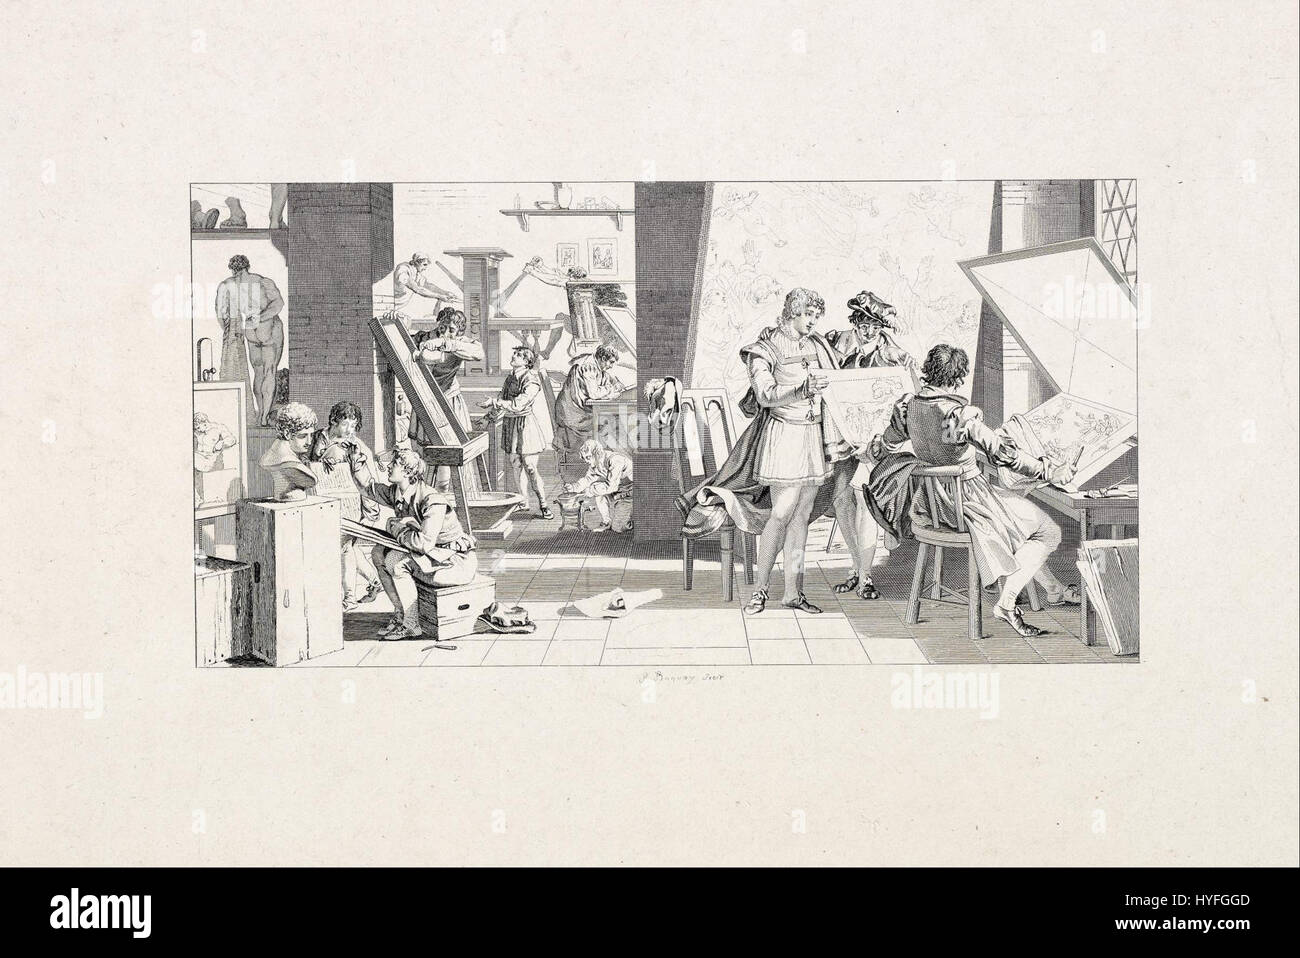 Pierre Charles Baquoy   Studio of a Printmaker   Google Art Project - Stock Image